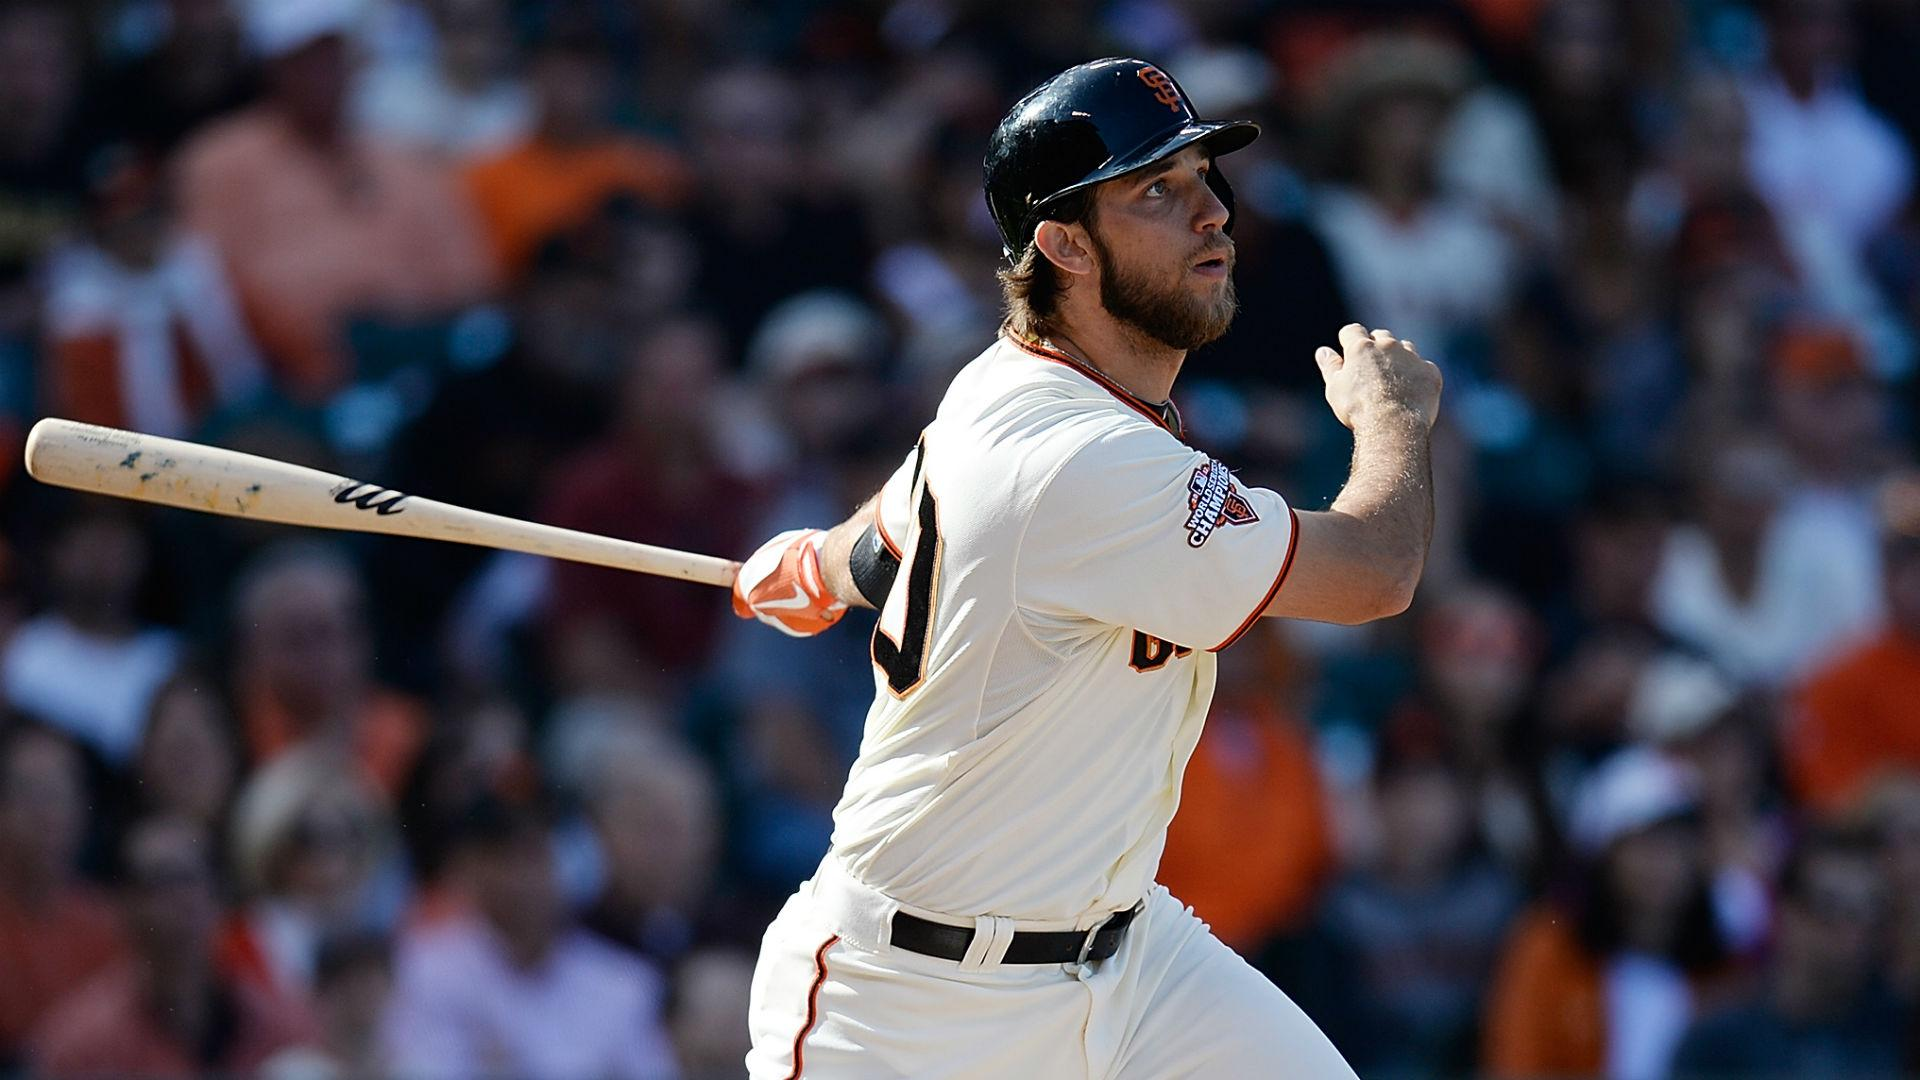 Madison Bumgarner Makes History, Bullpen Blows it | The Sports Journal